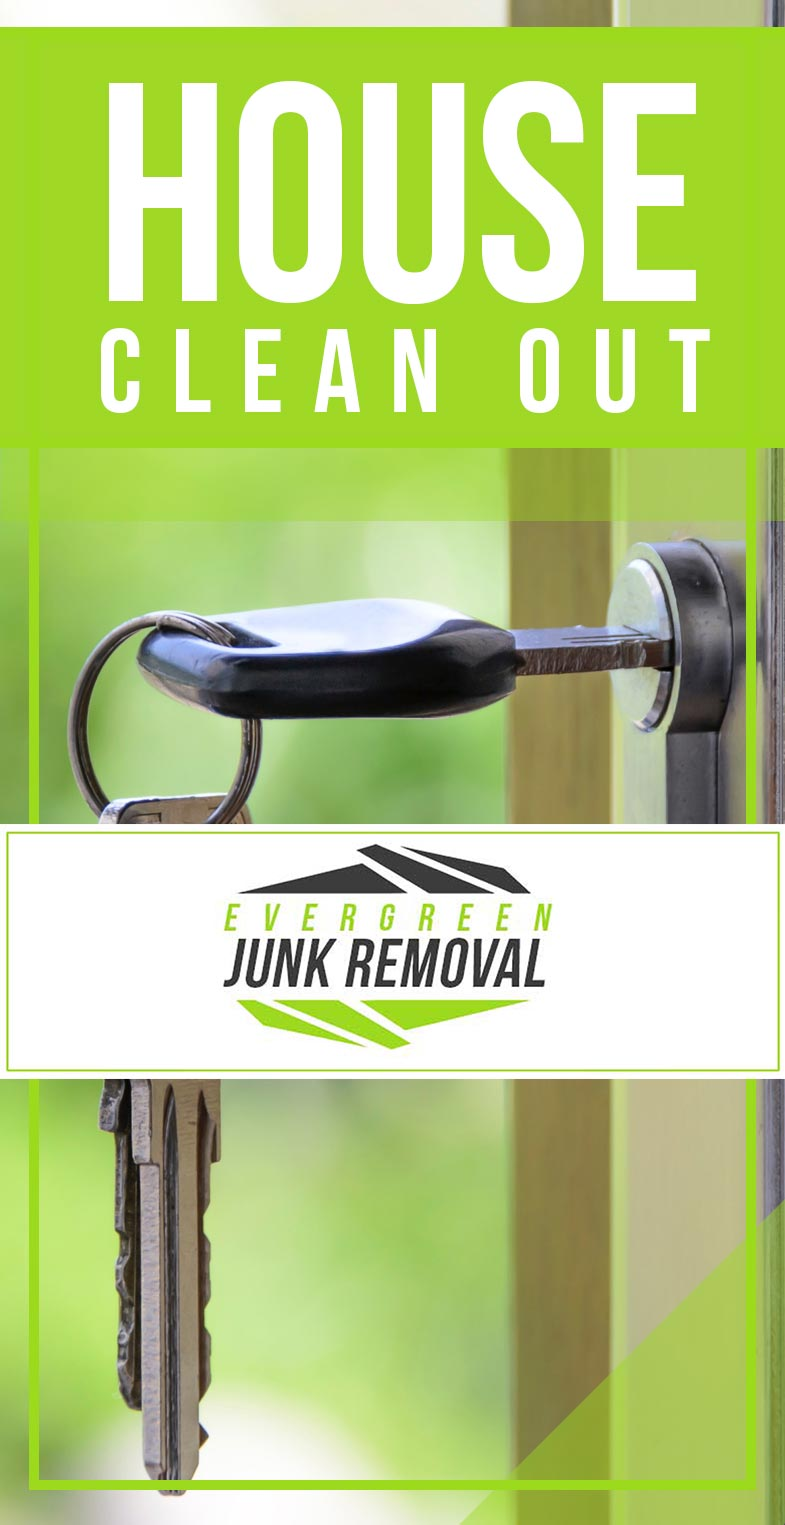 Junk Removal Riviera Beach House Clean Out